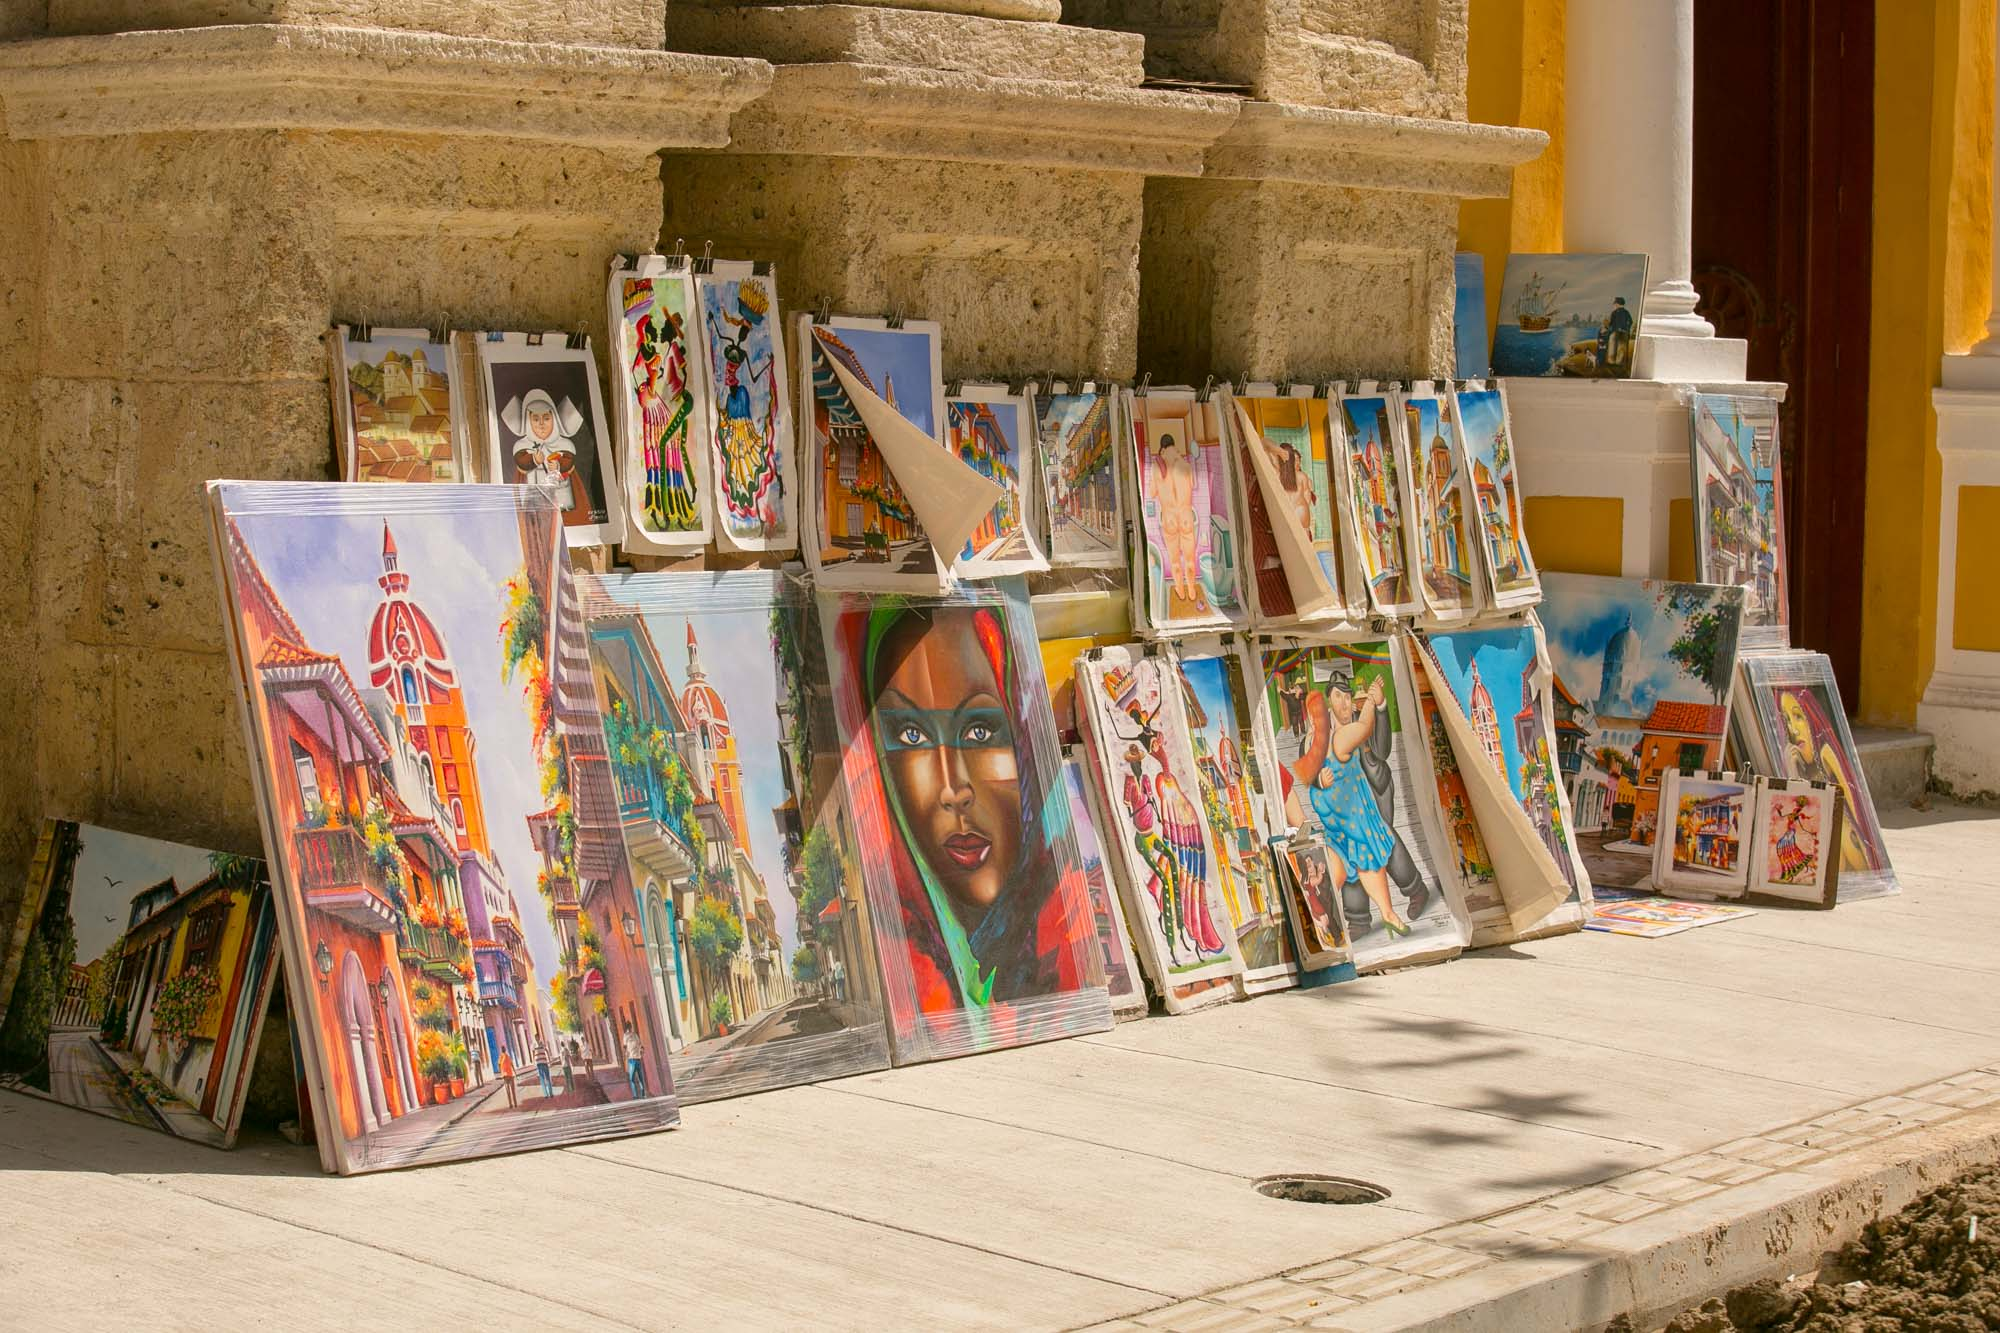 Cartagena art for sale